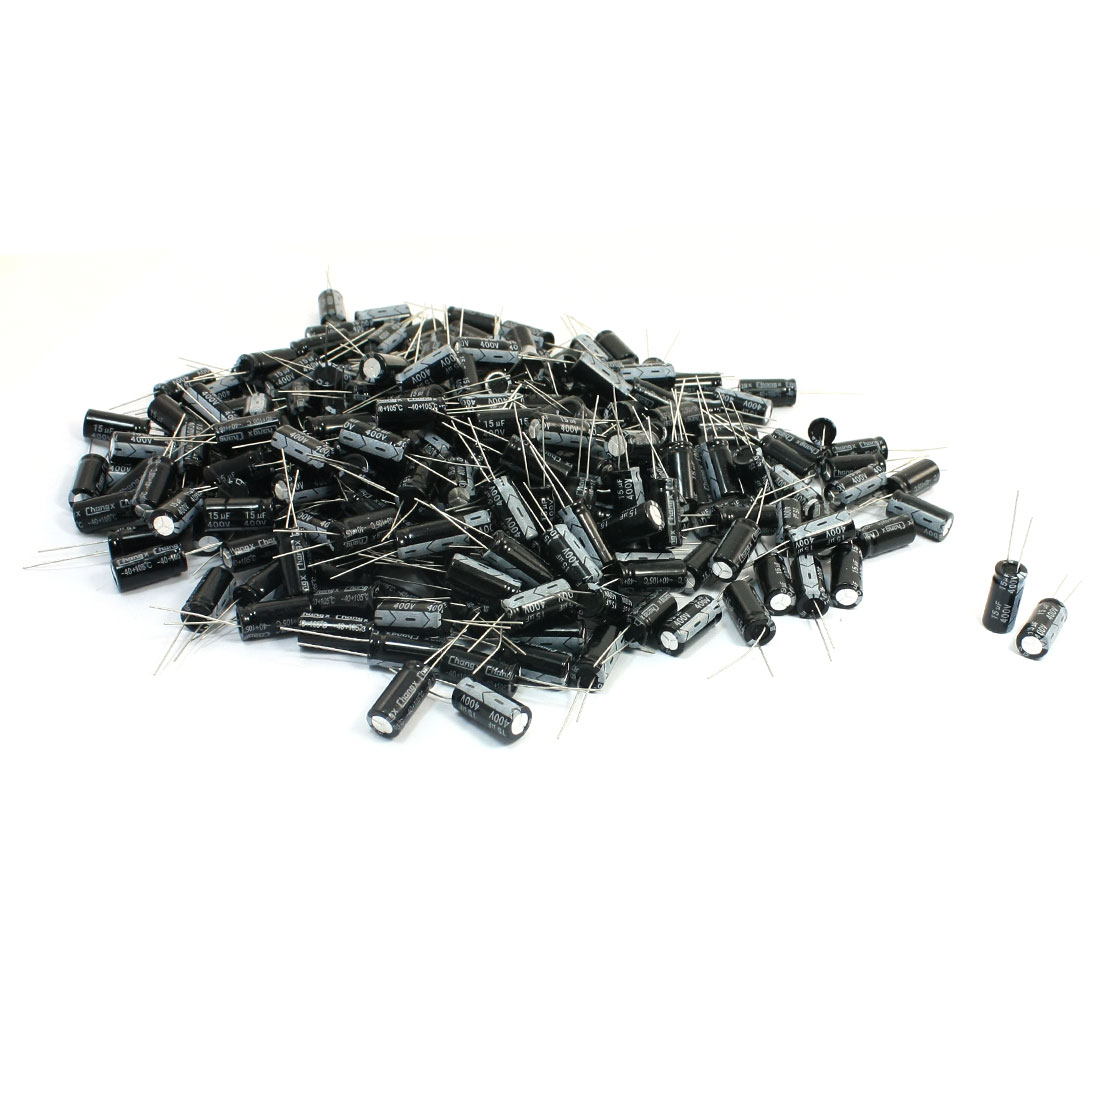 250Pcs-Electrolytic-Capacitors-400V-15uF-Volume-21mm-x-10mm